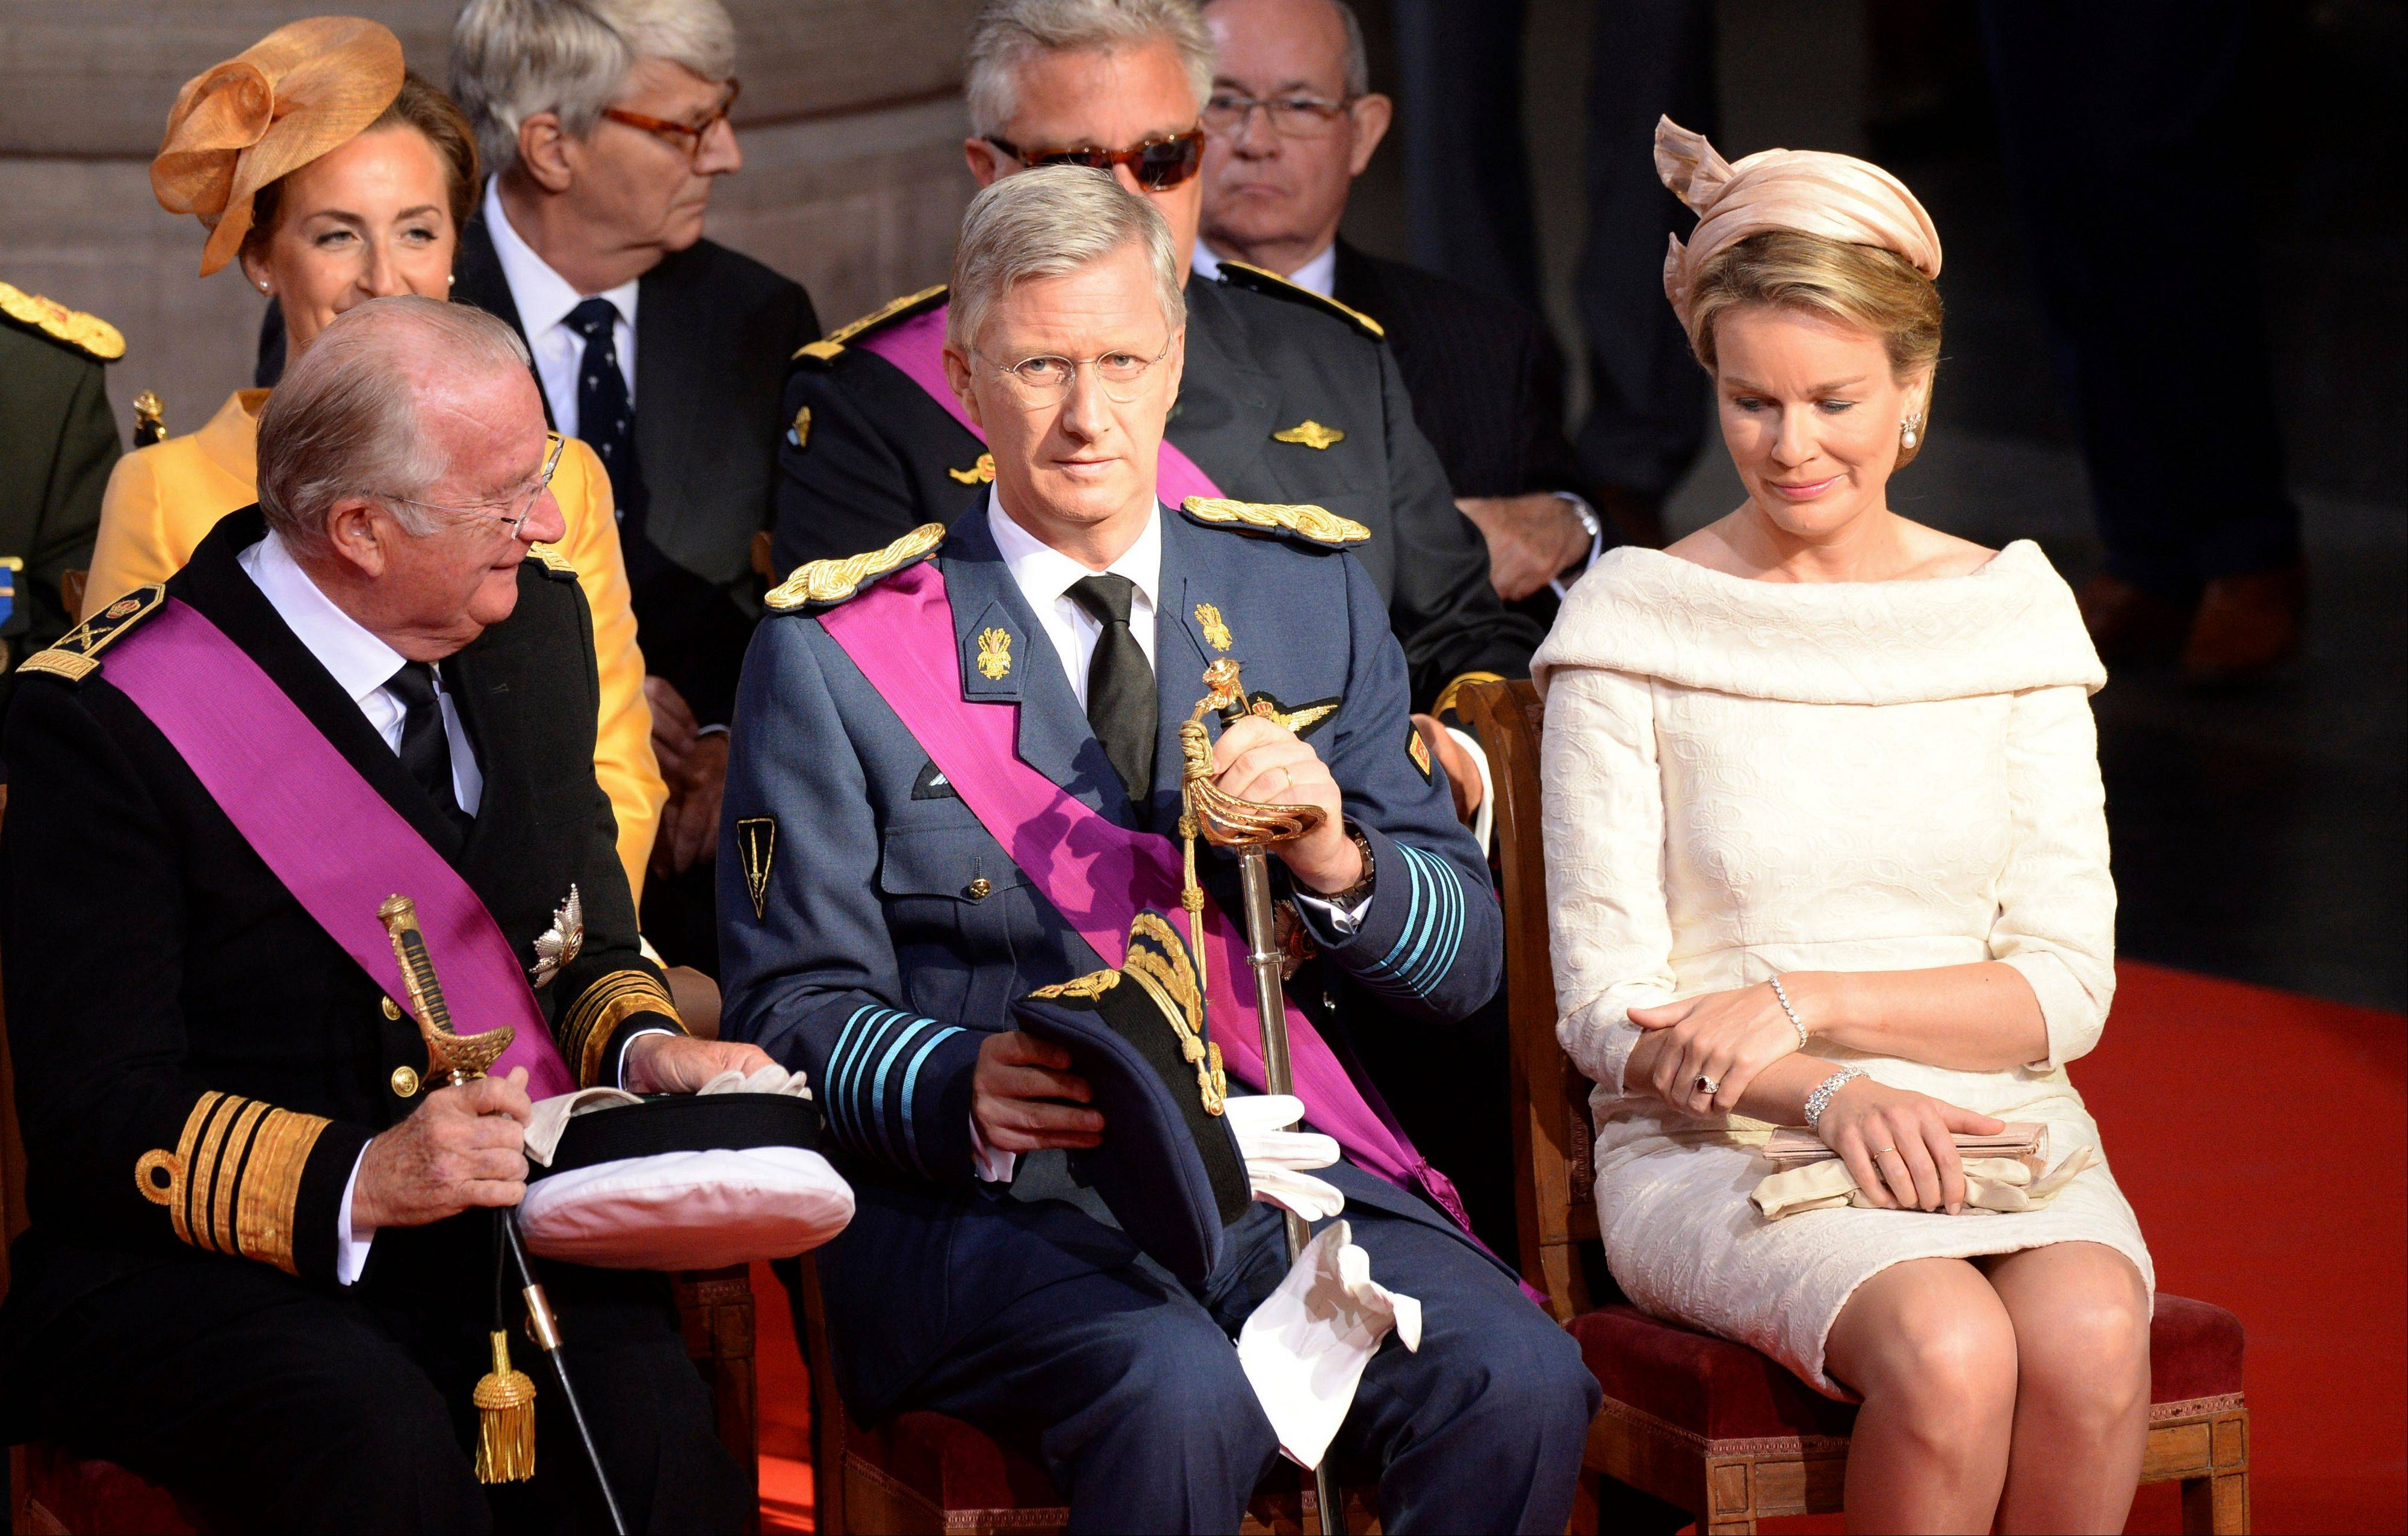 Belgium's King Albert II, left, Prince Philippe, center, and his wife Princess Mathilde attend a church service at the St. Gudule cathedral in Brussels on Sunday, July 21, 2013. Belgium's King Albert II was set Sunday to relinquish the throne in a concession to his age and health, paving the way for his eldest son to become the country's seventh monarch.